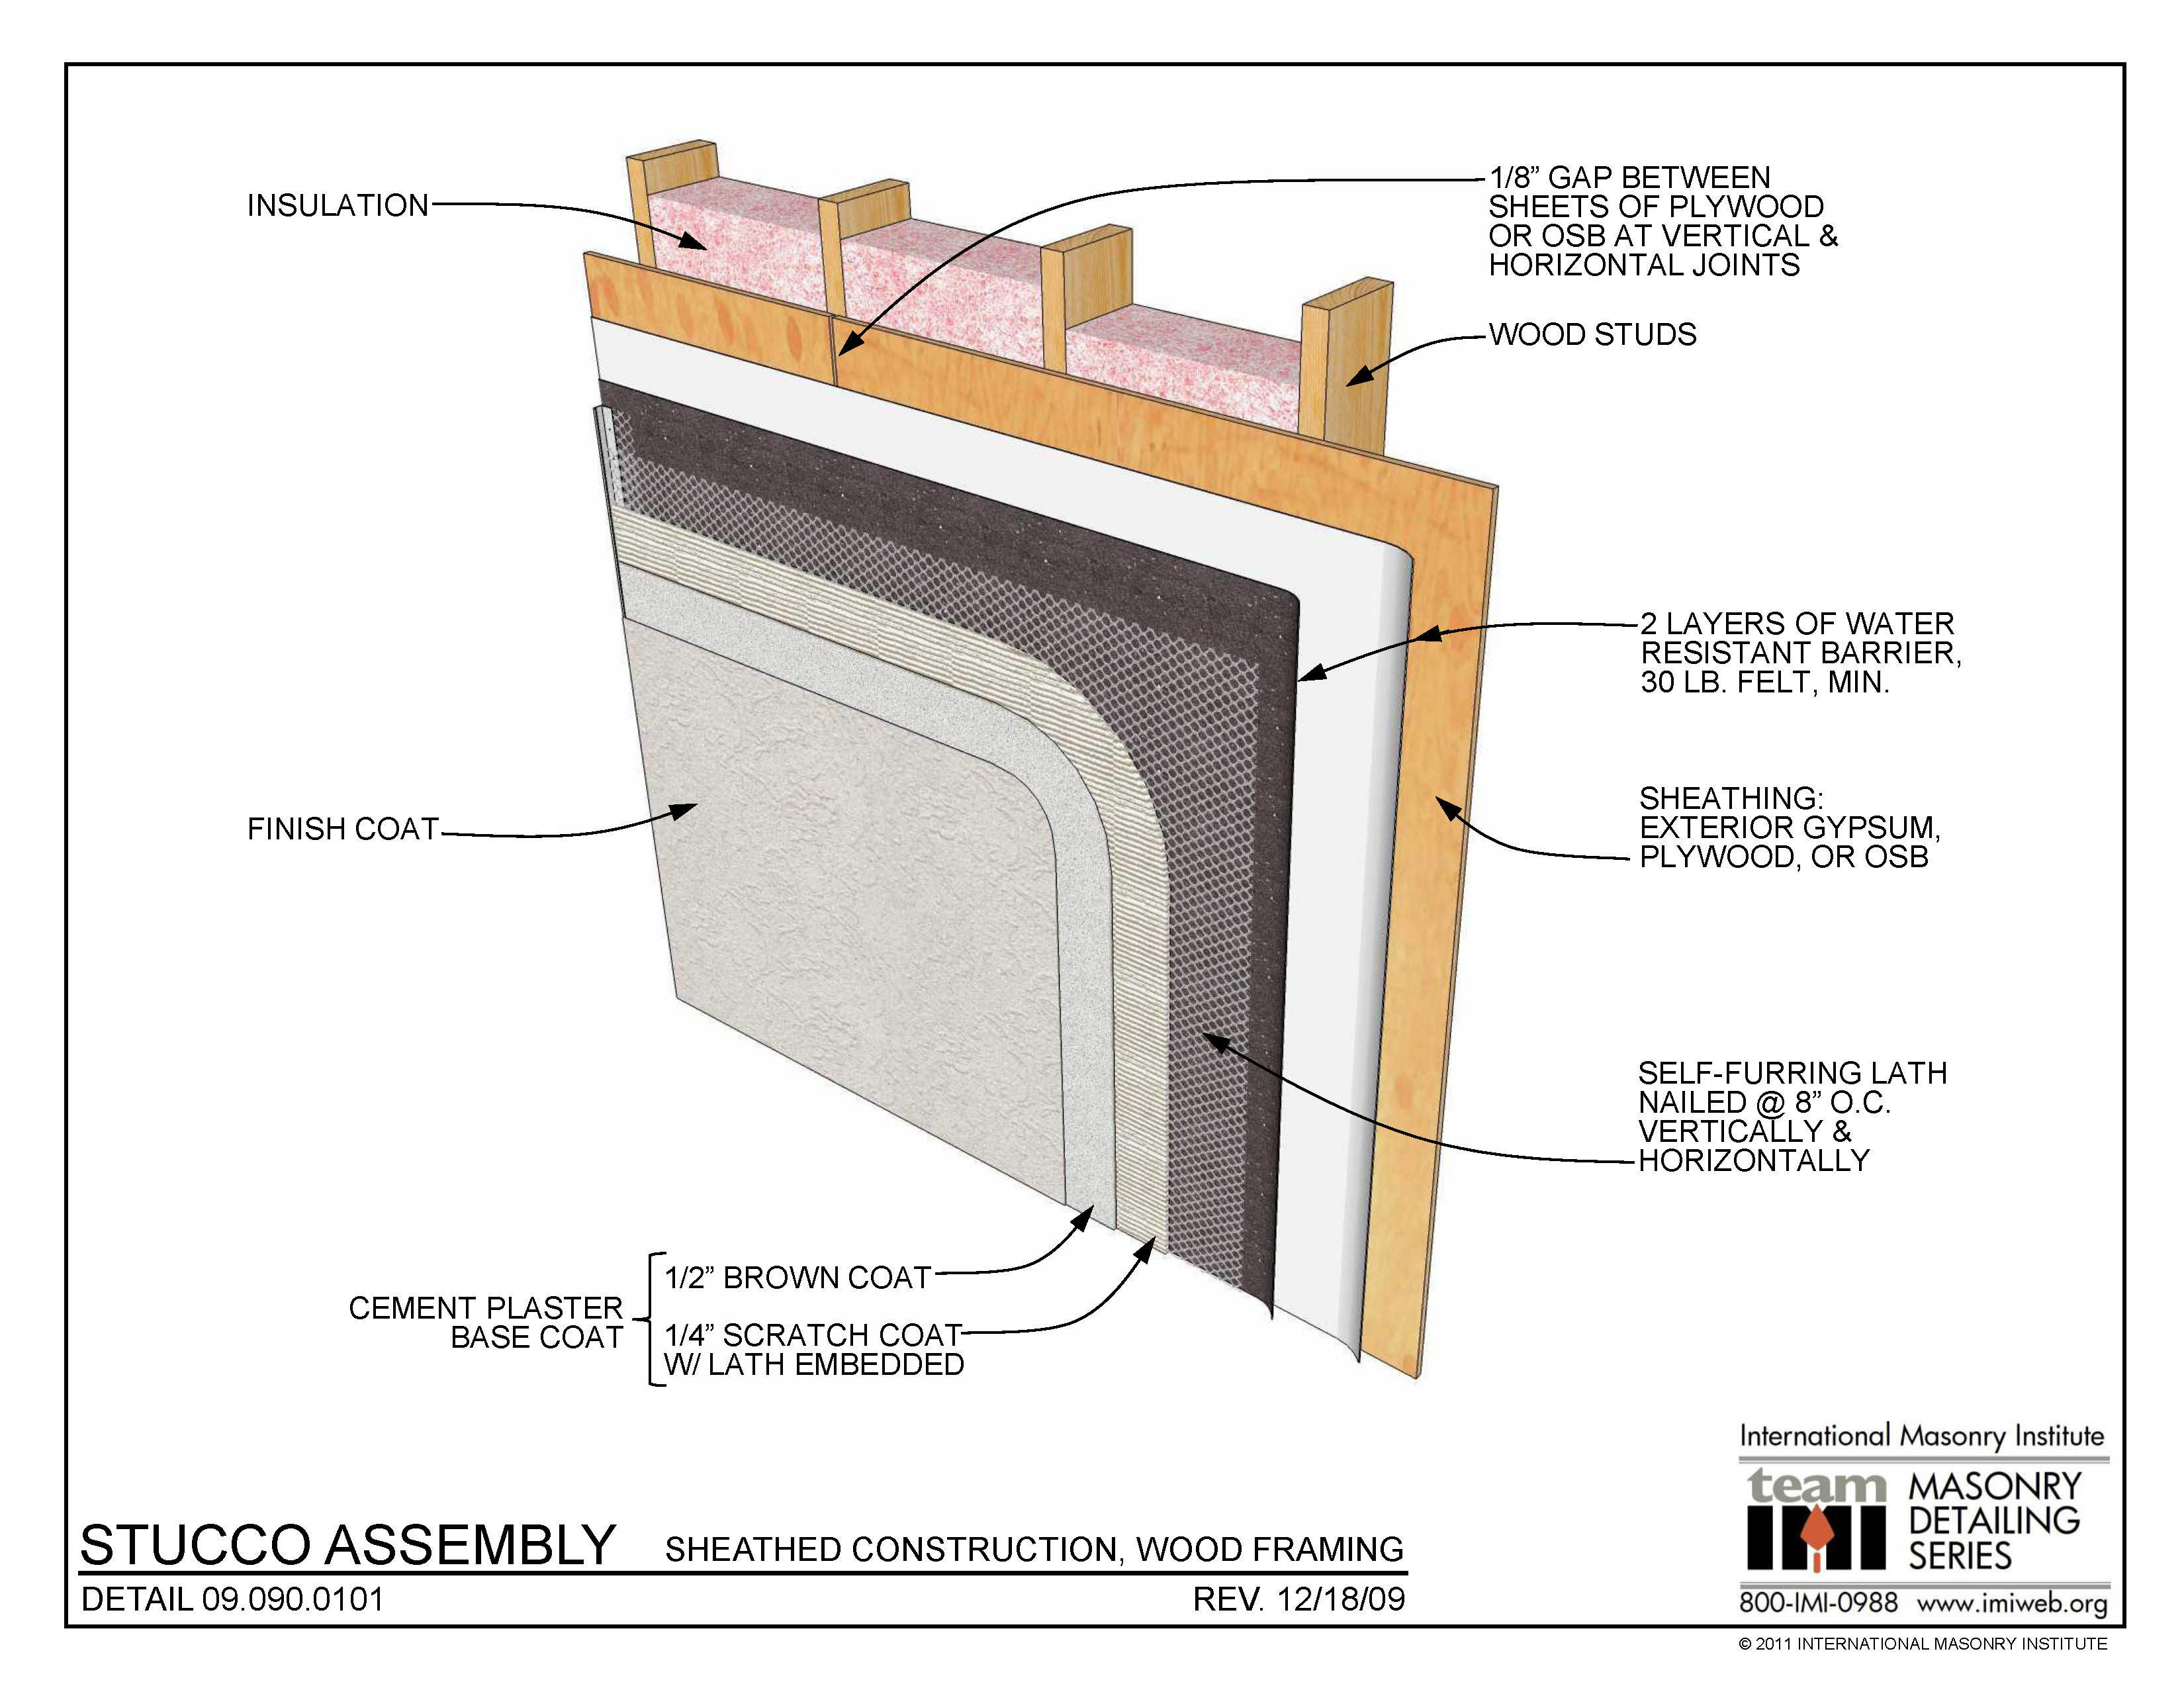 09.090.0101: Stucco Assembly - Sheathed Construction, Wood